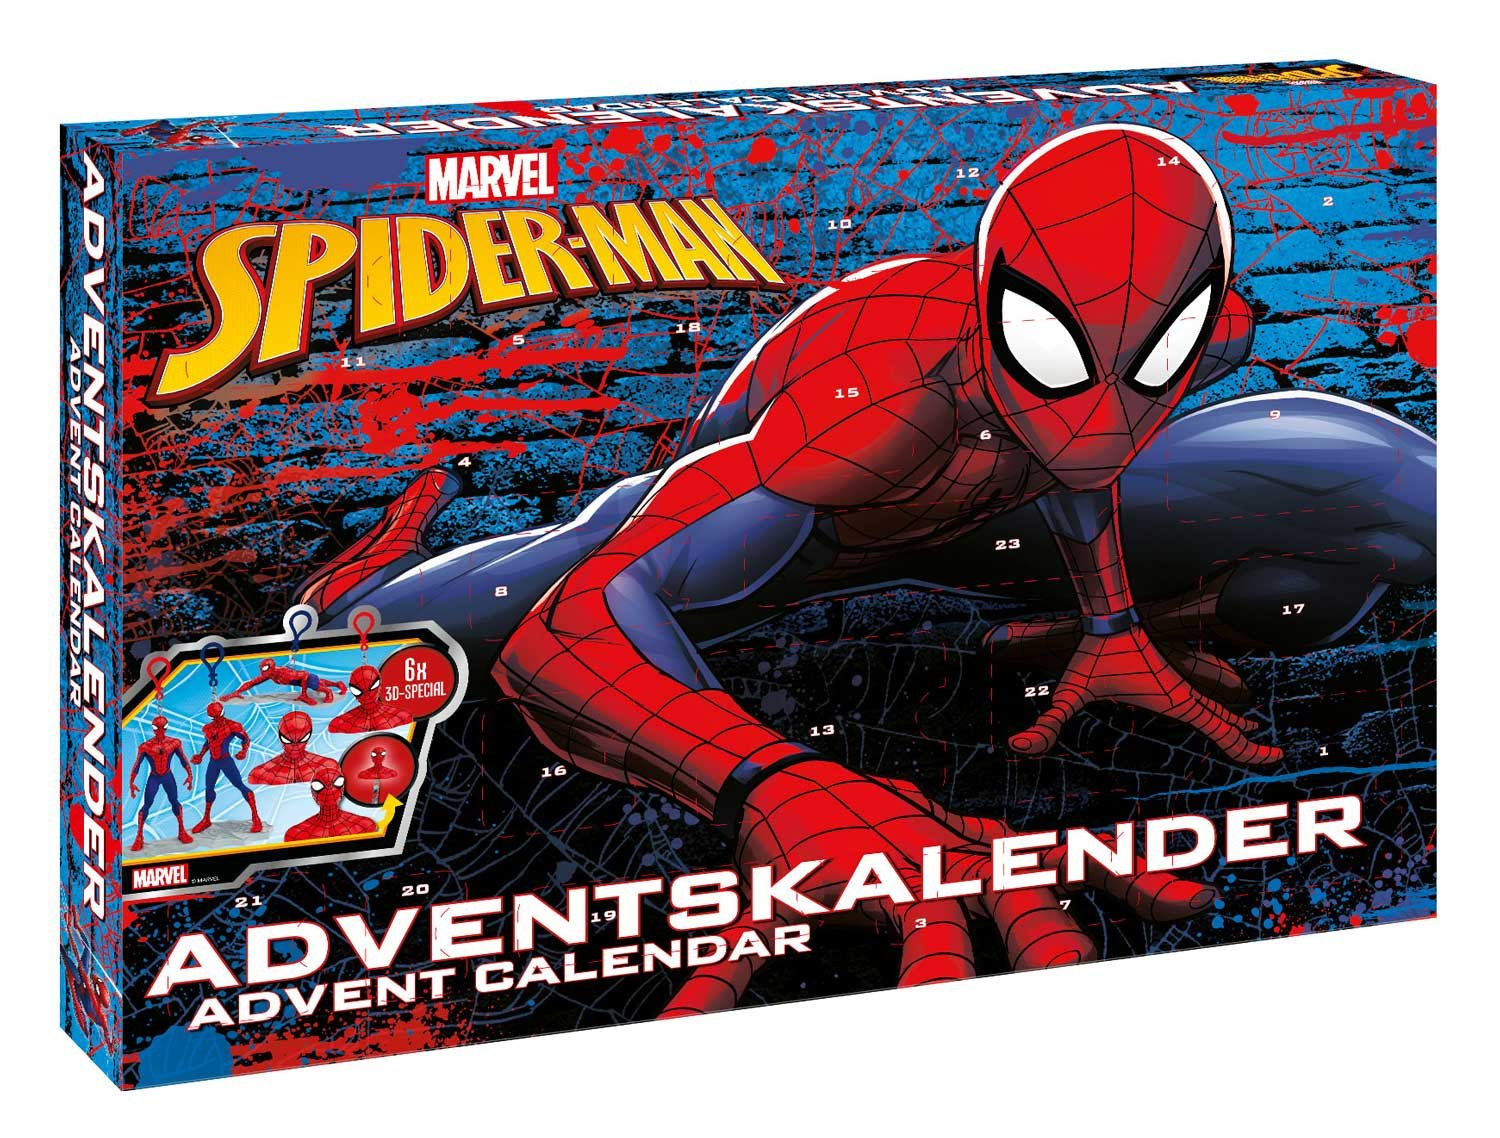 Craze 57484 - Adventskalender Marvel Spider-Man Craze_57484